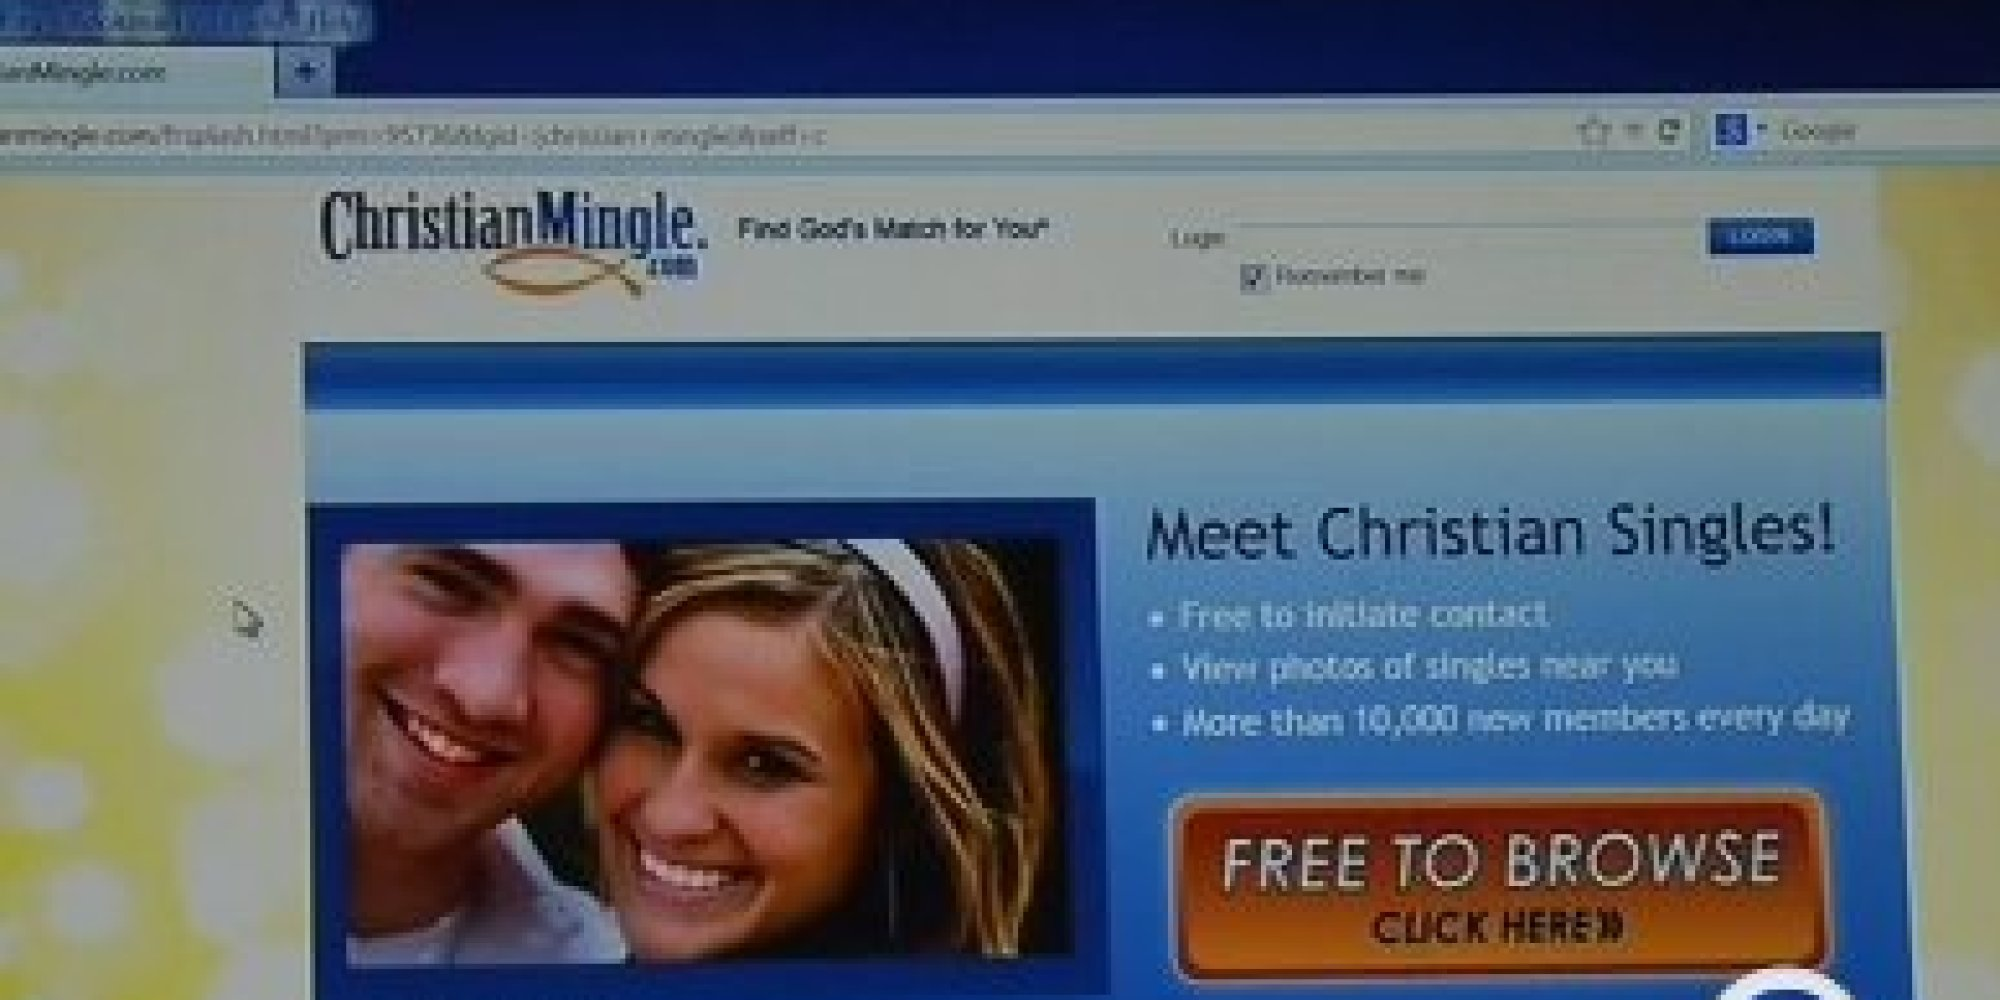 Christian website for dating